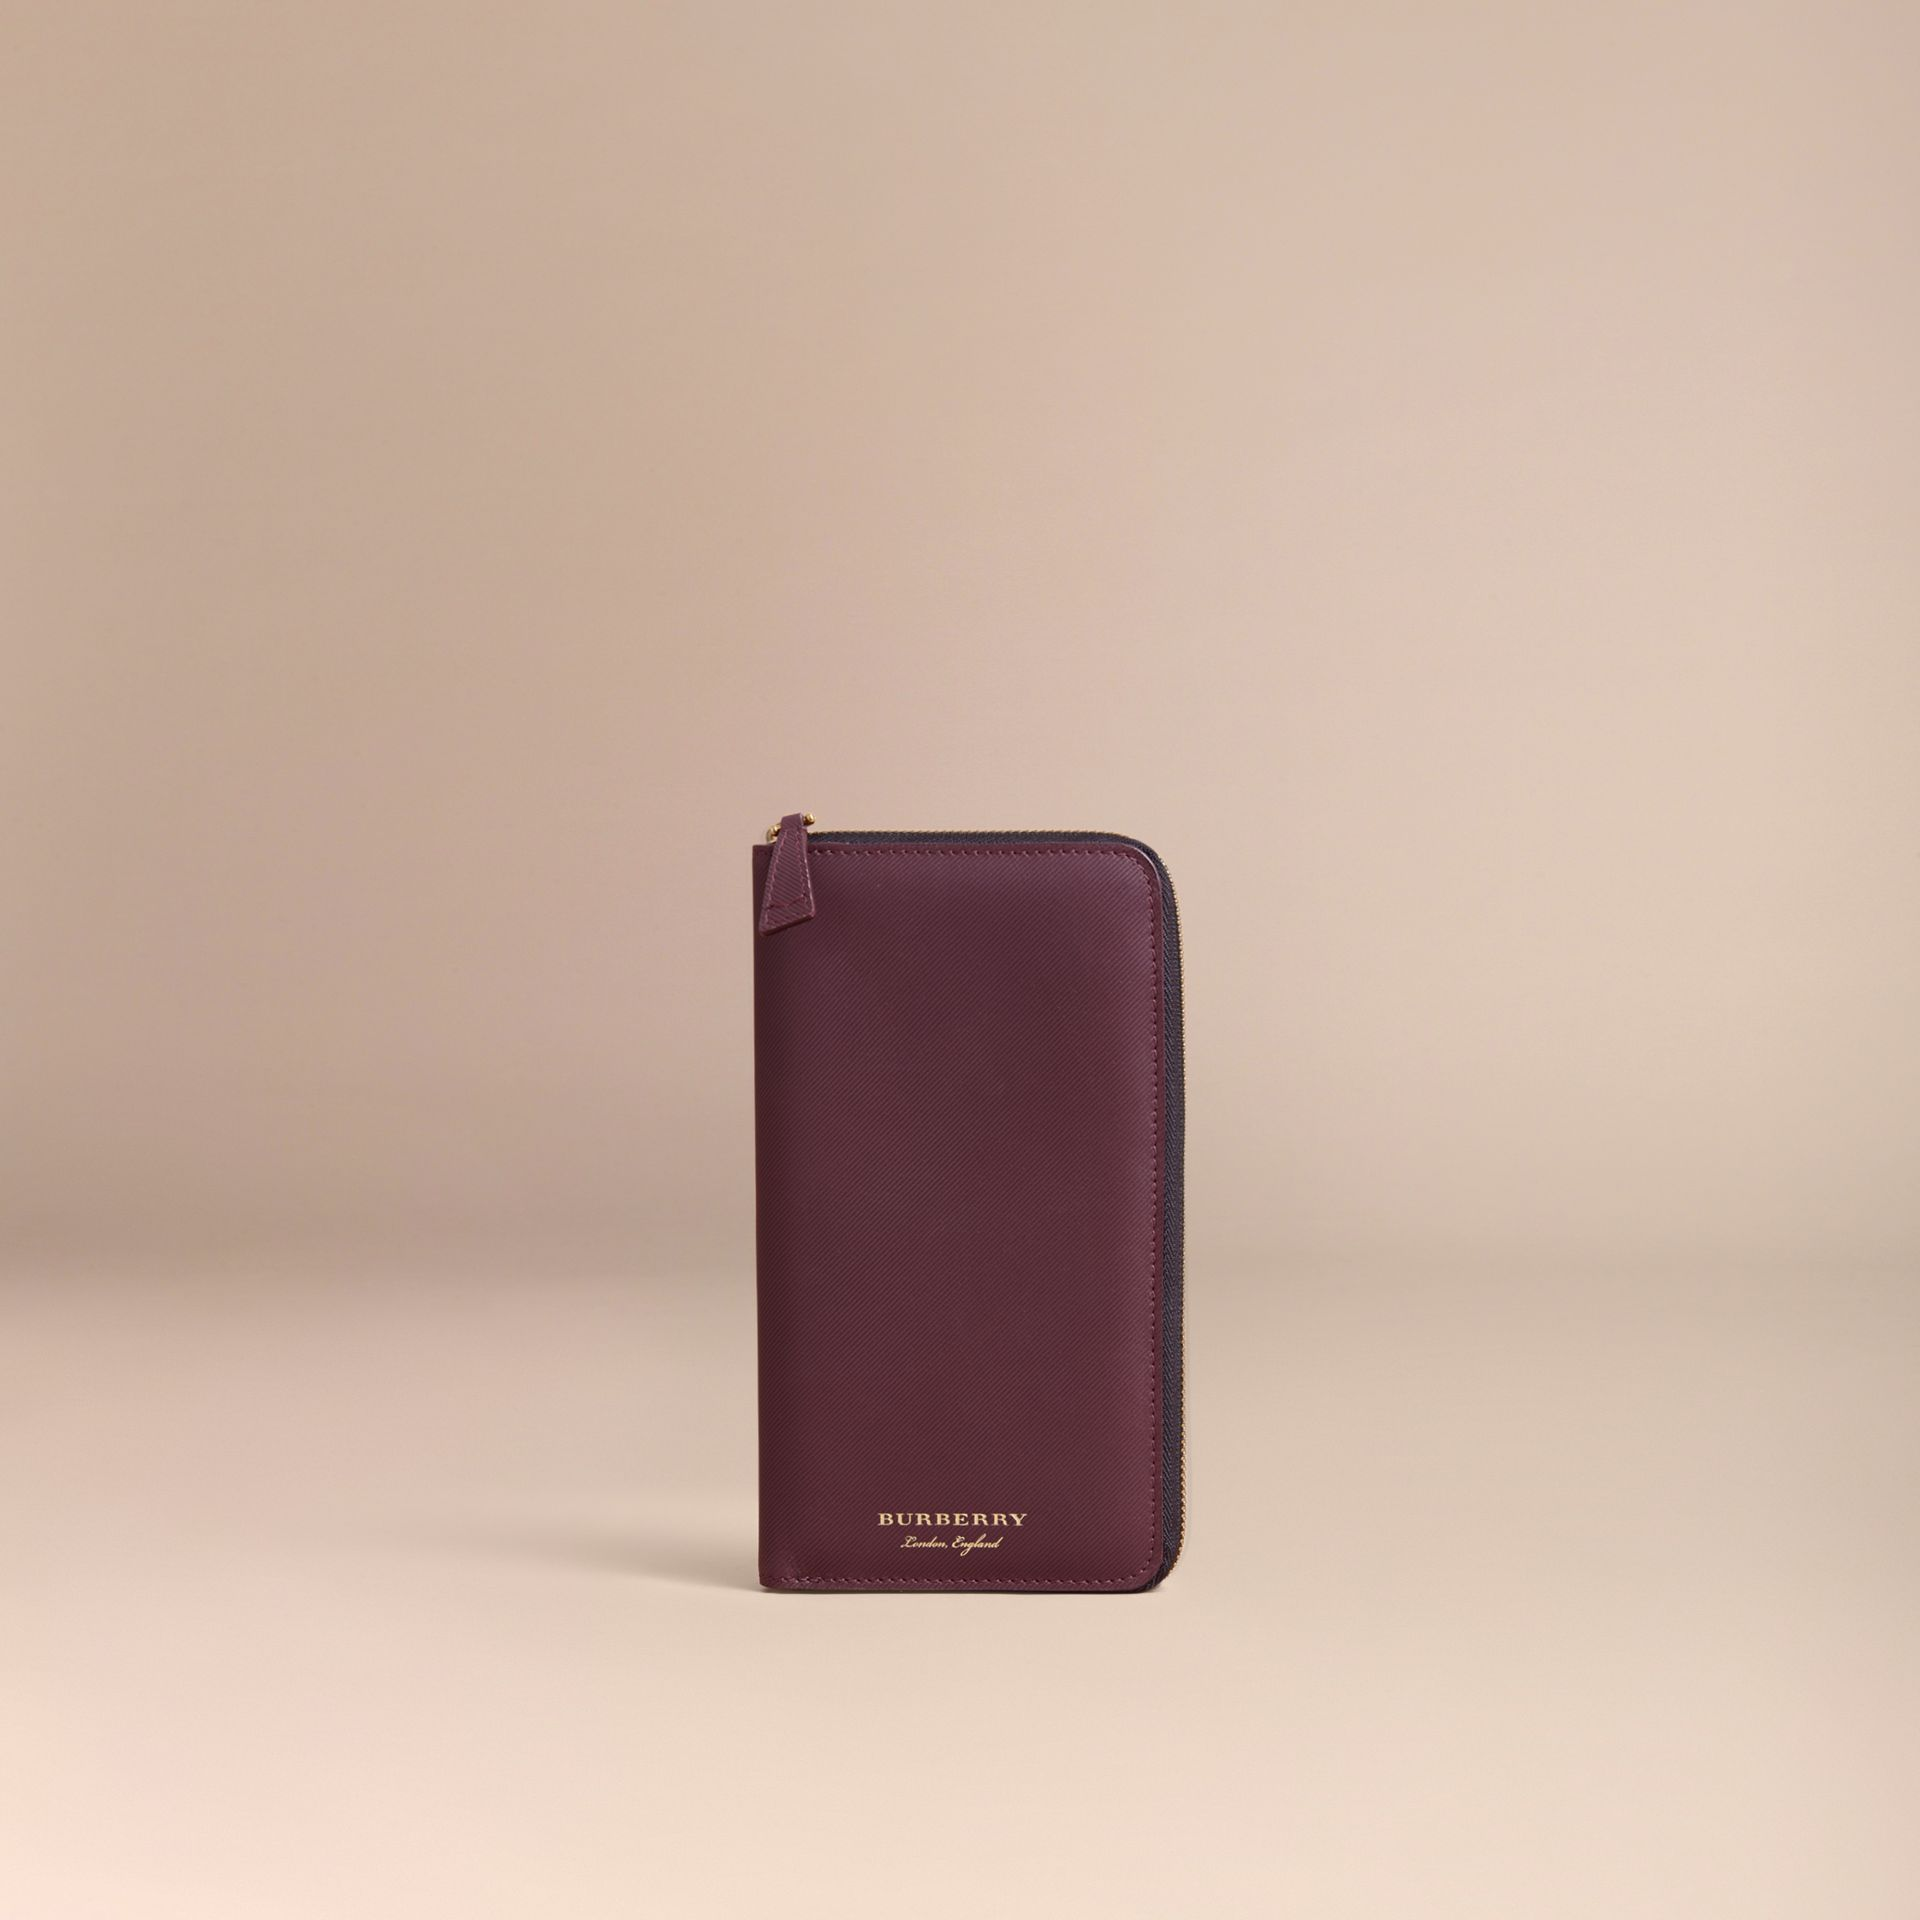 Trench Leather Ziparound Wallet in Wine - Men | Burberry Australia - gallery image 6